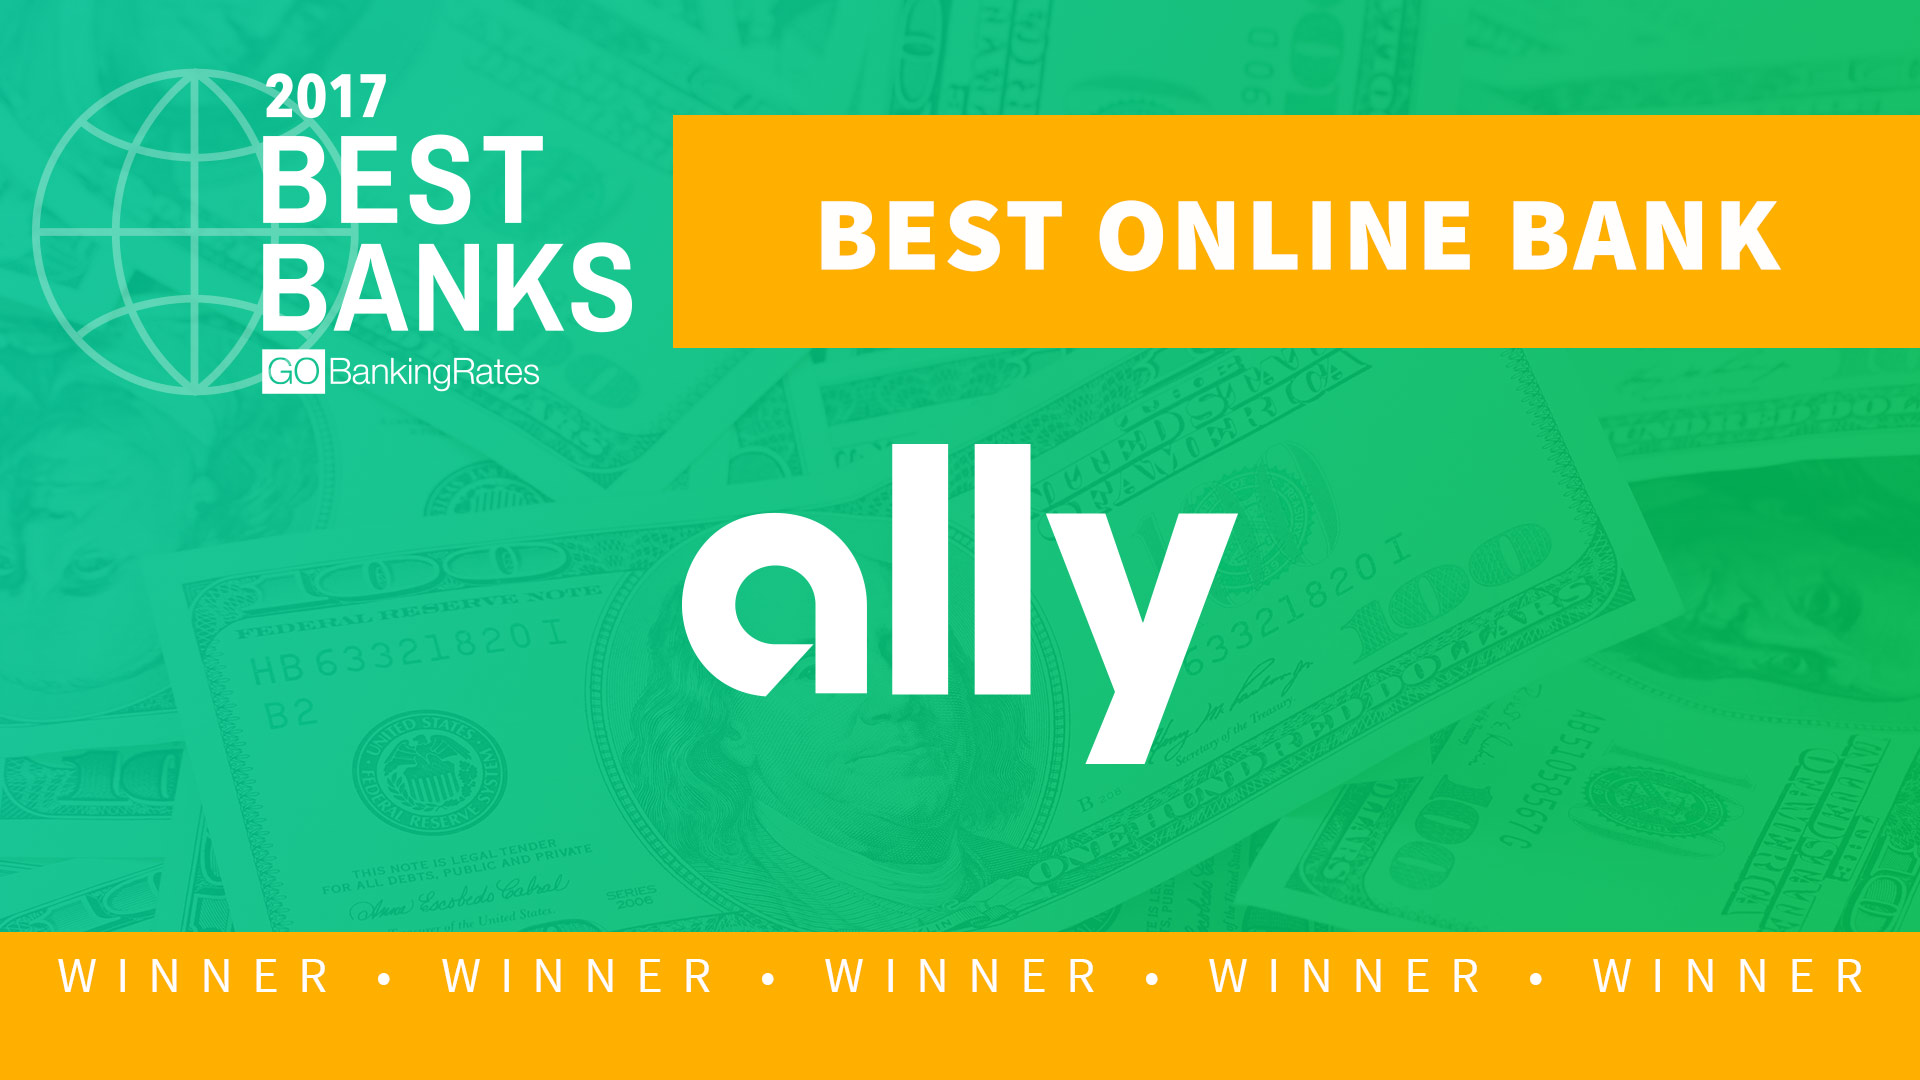 How to Withdraw Cash From Online Banks Like Ally and Discover ...